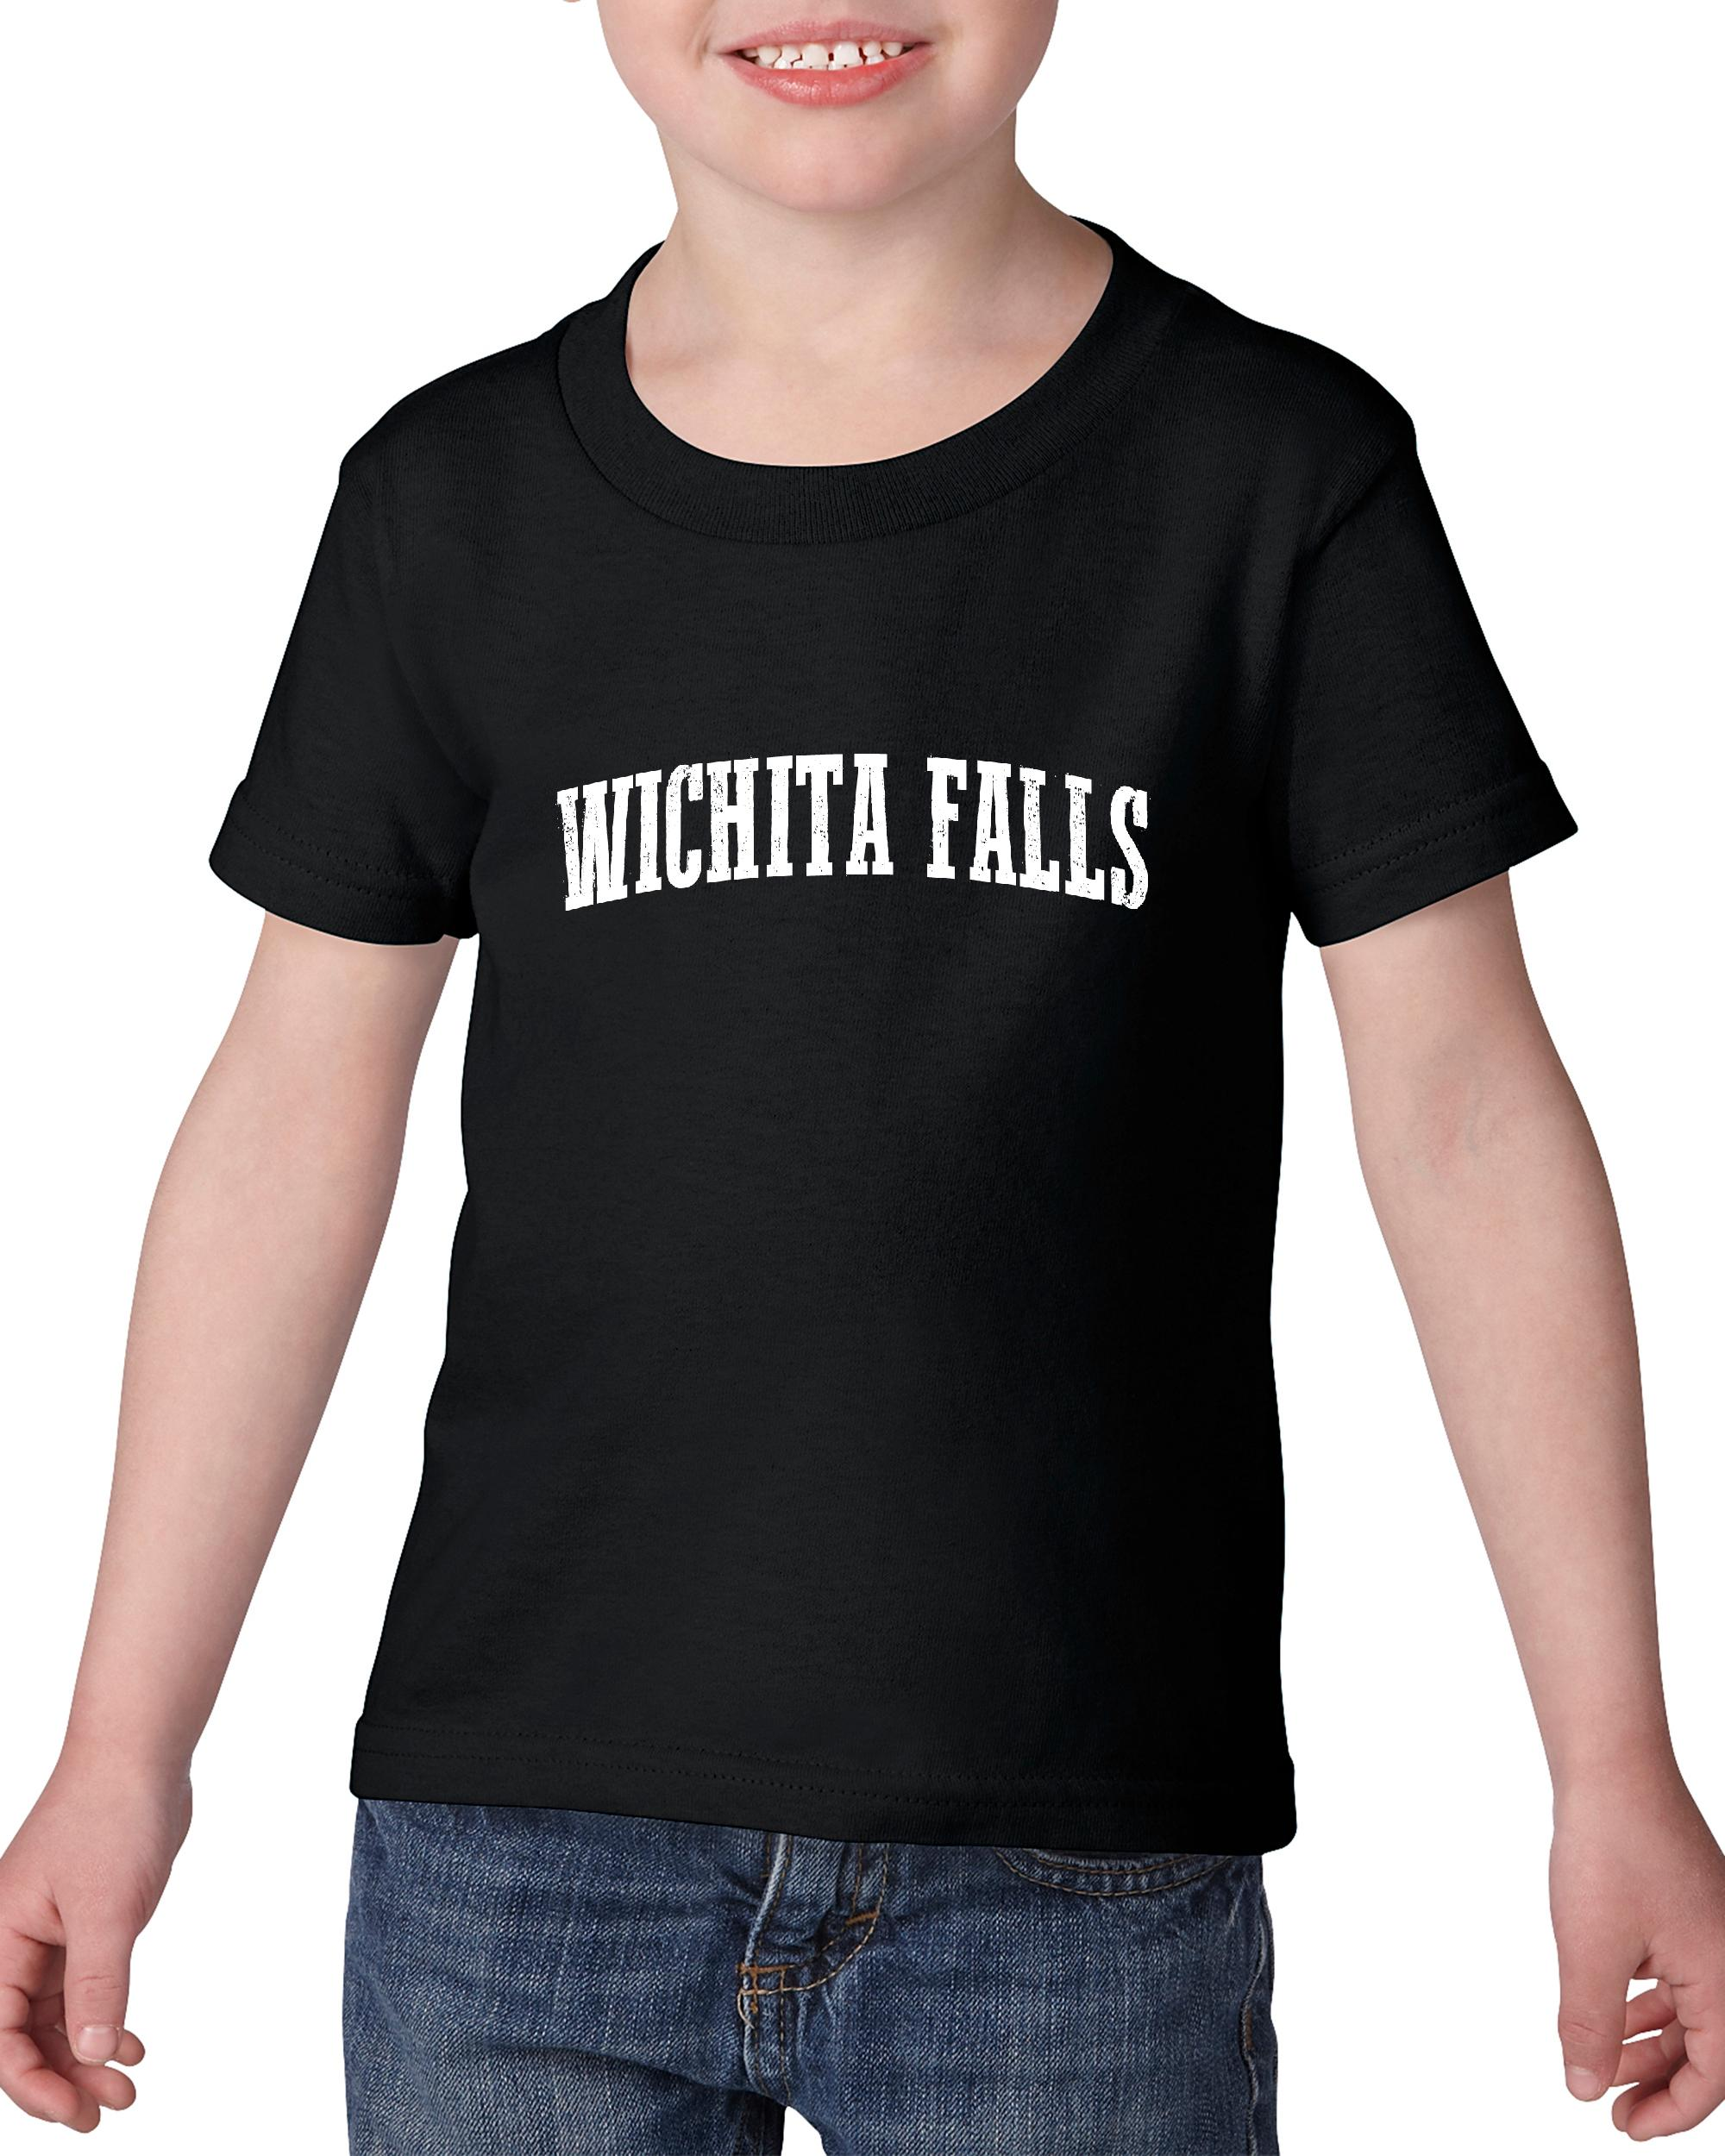 Artix Wichita Falls TX Texas Flag Houston Map Longhorns Bobcats Home Texas State University Heavy Cotton Toddler Kids T-Shirt Tee Clothing